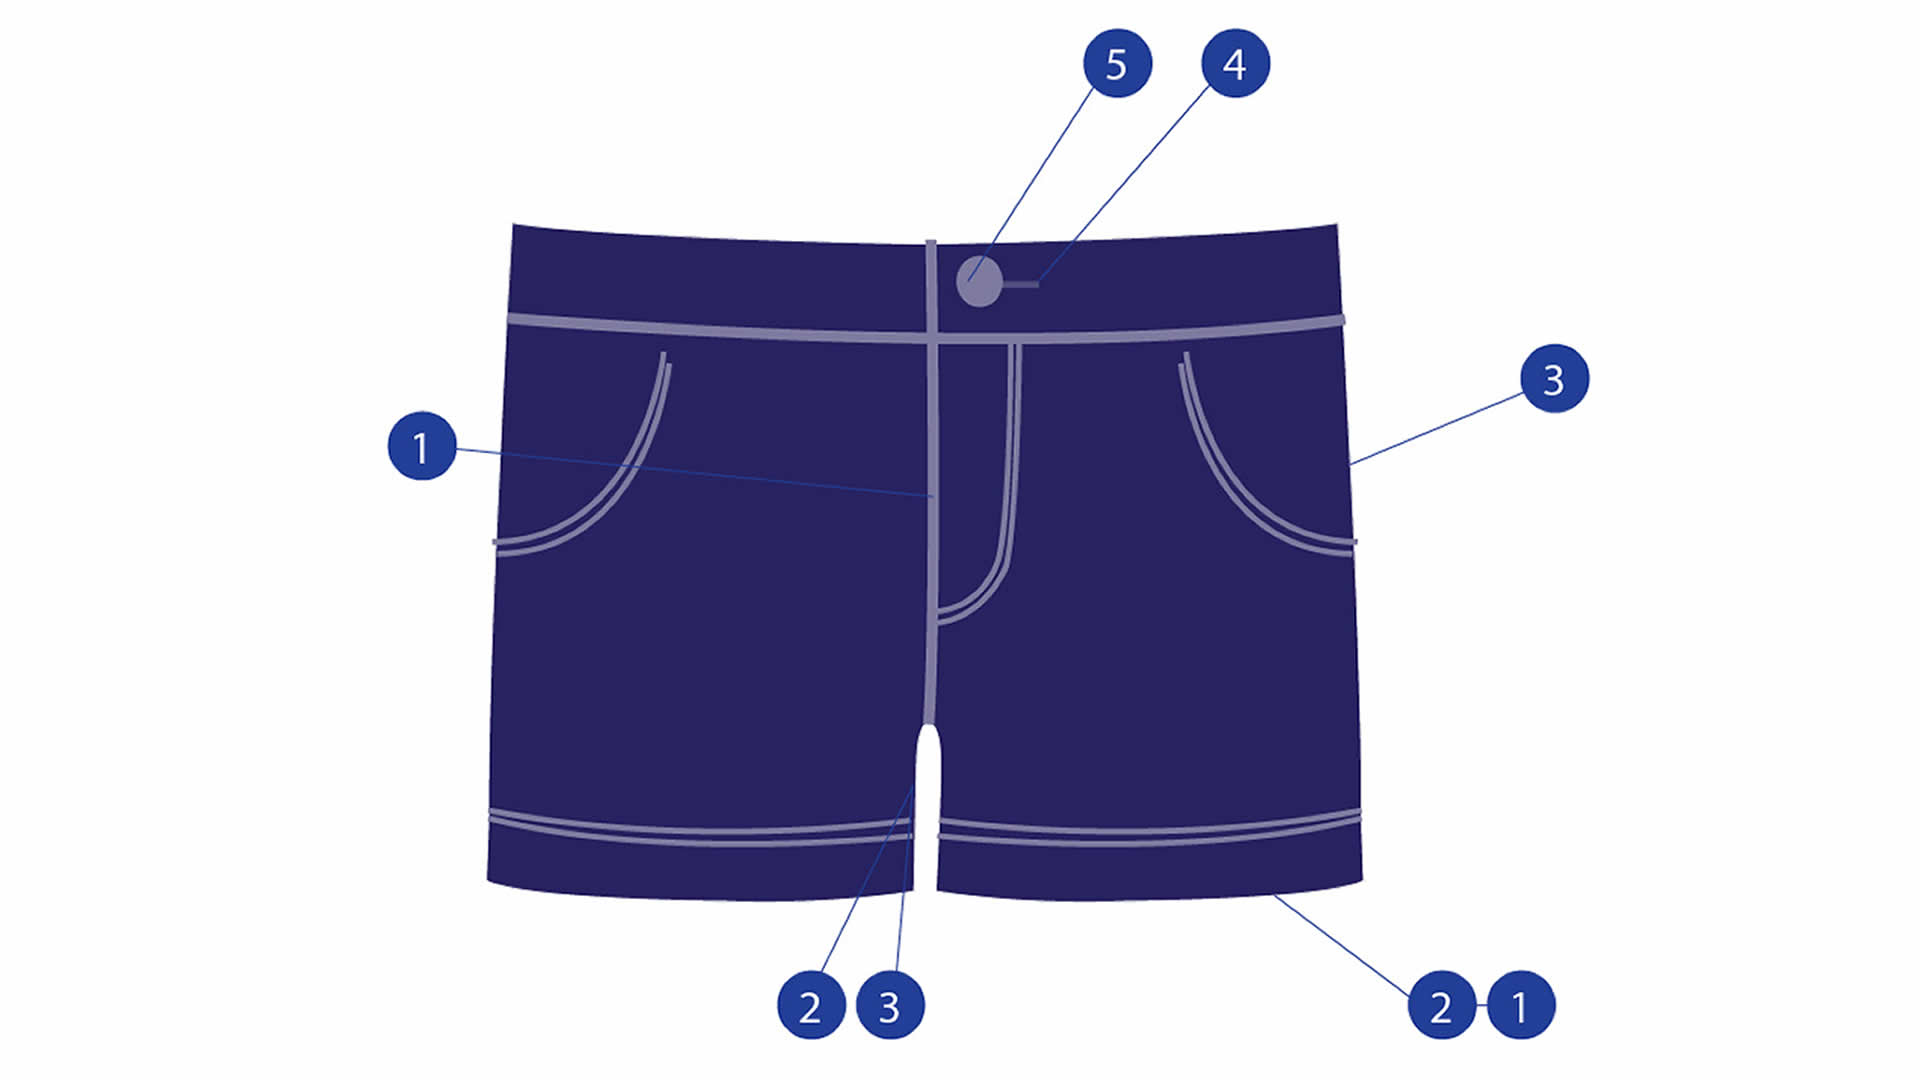 Ladieswear Shorts diagram